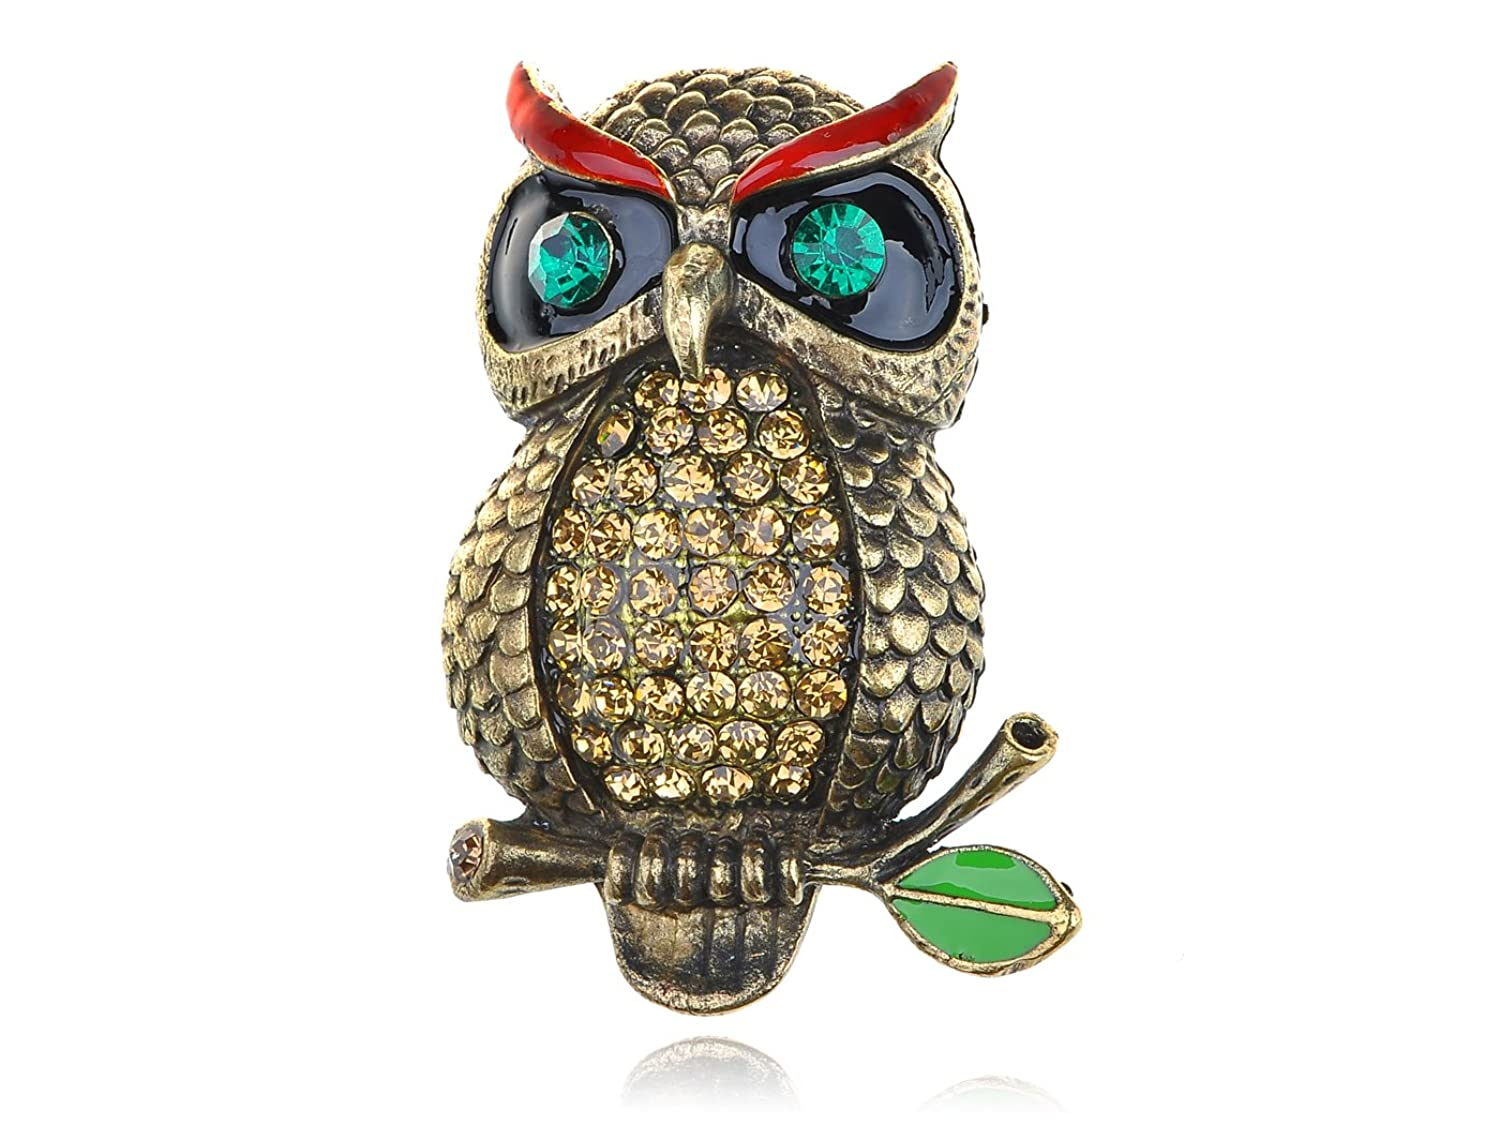 Alilang Antique Golden Tone Light Multicolored Rhinestones Mean Eyebrows Owl Bird Brooch Pin